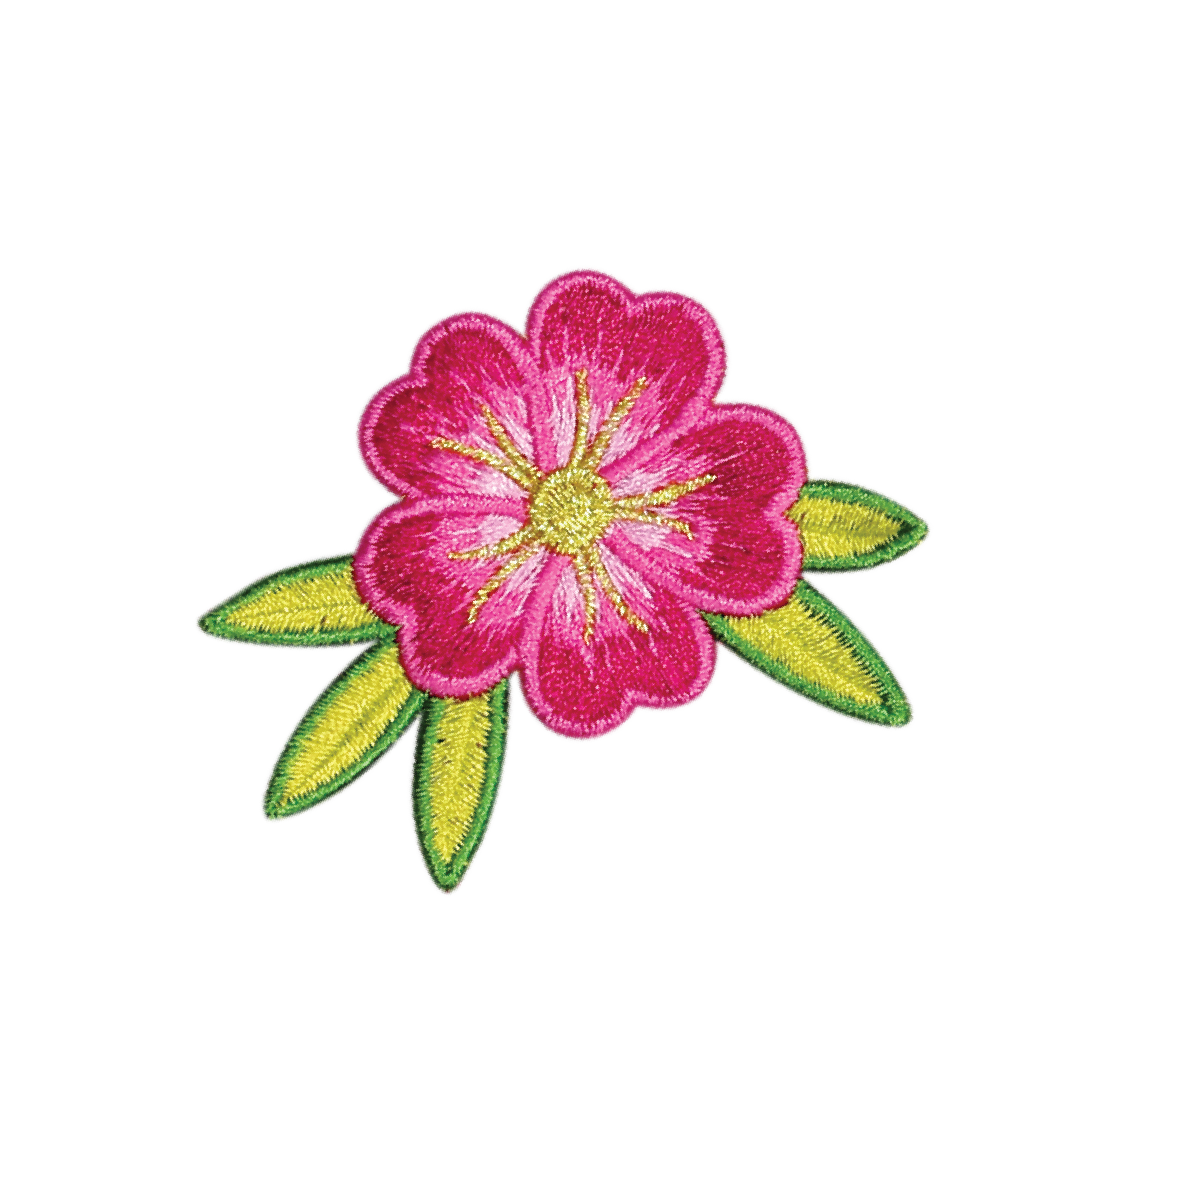 Flower patch png. Lifestyle products cherry blossom